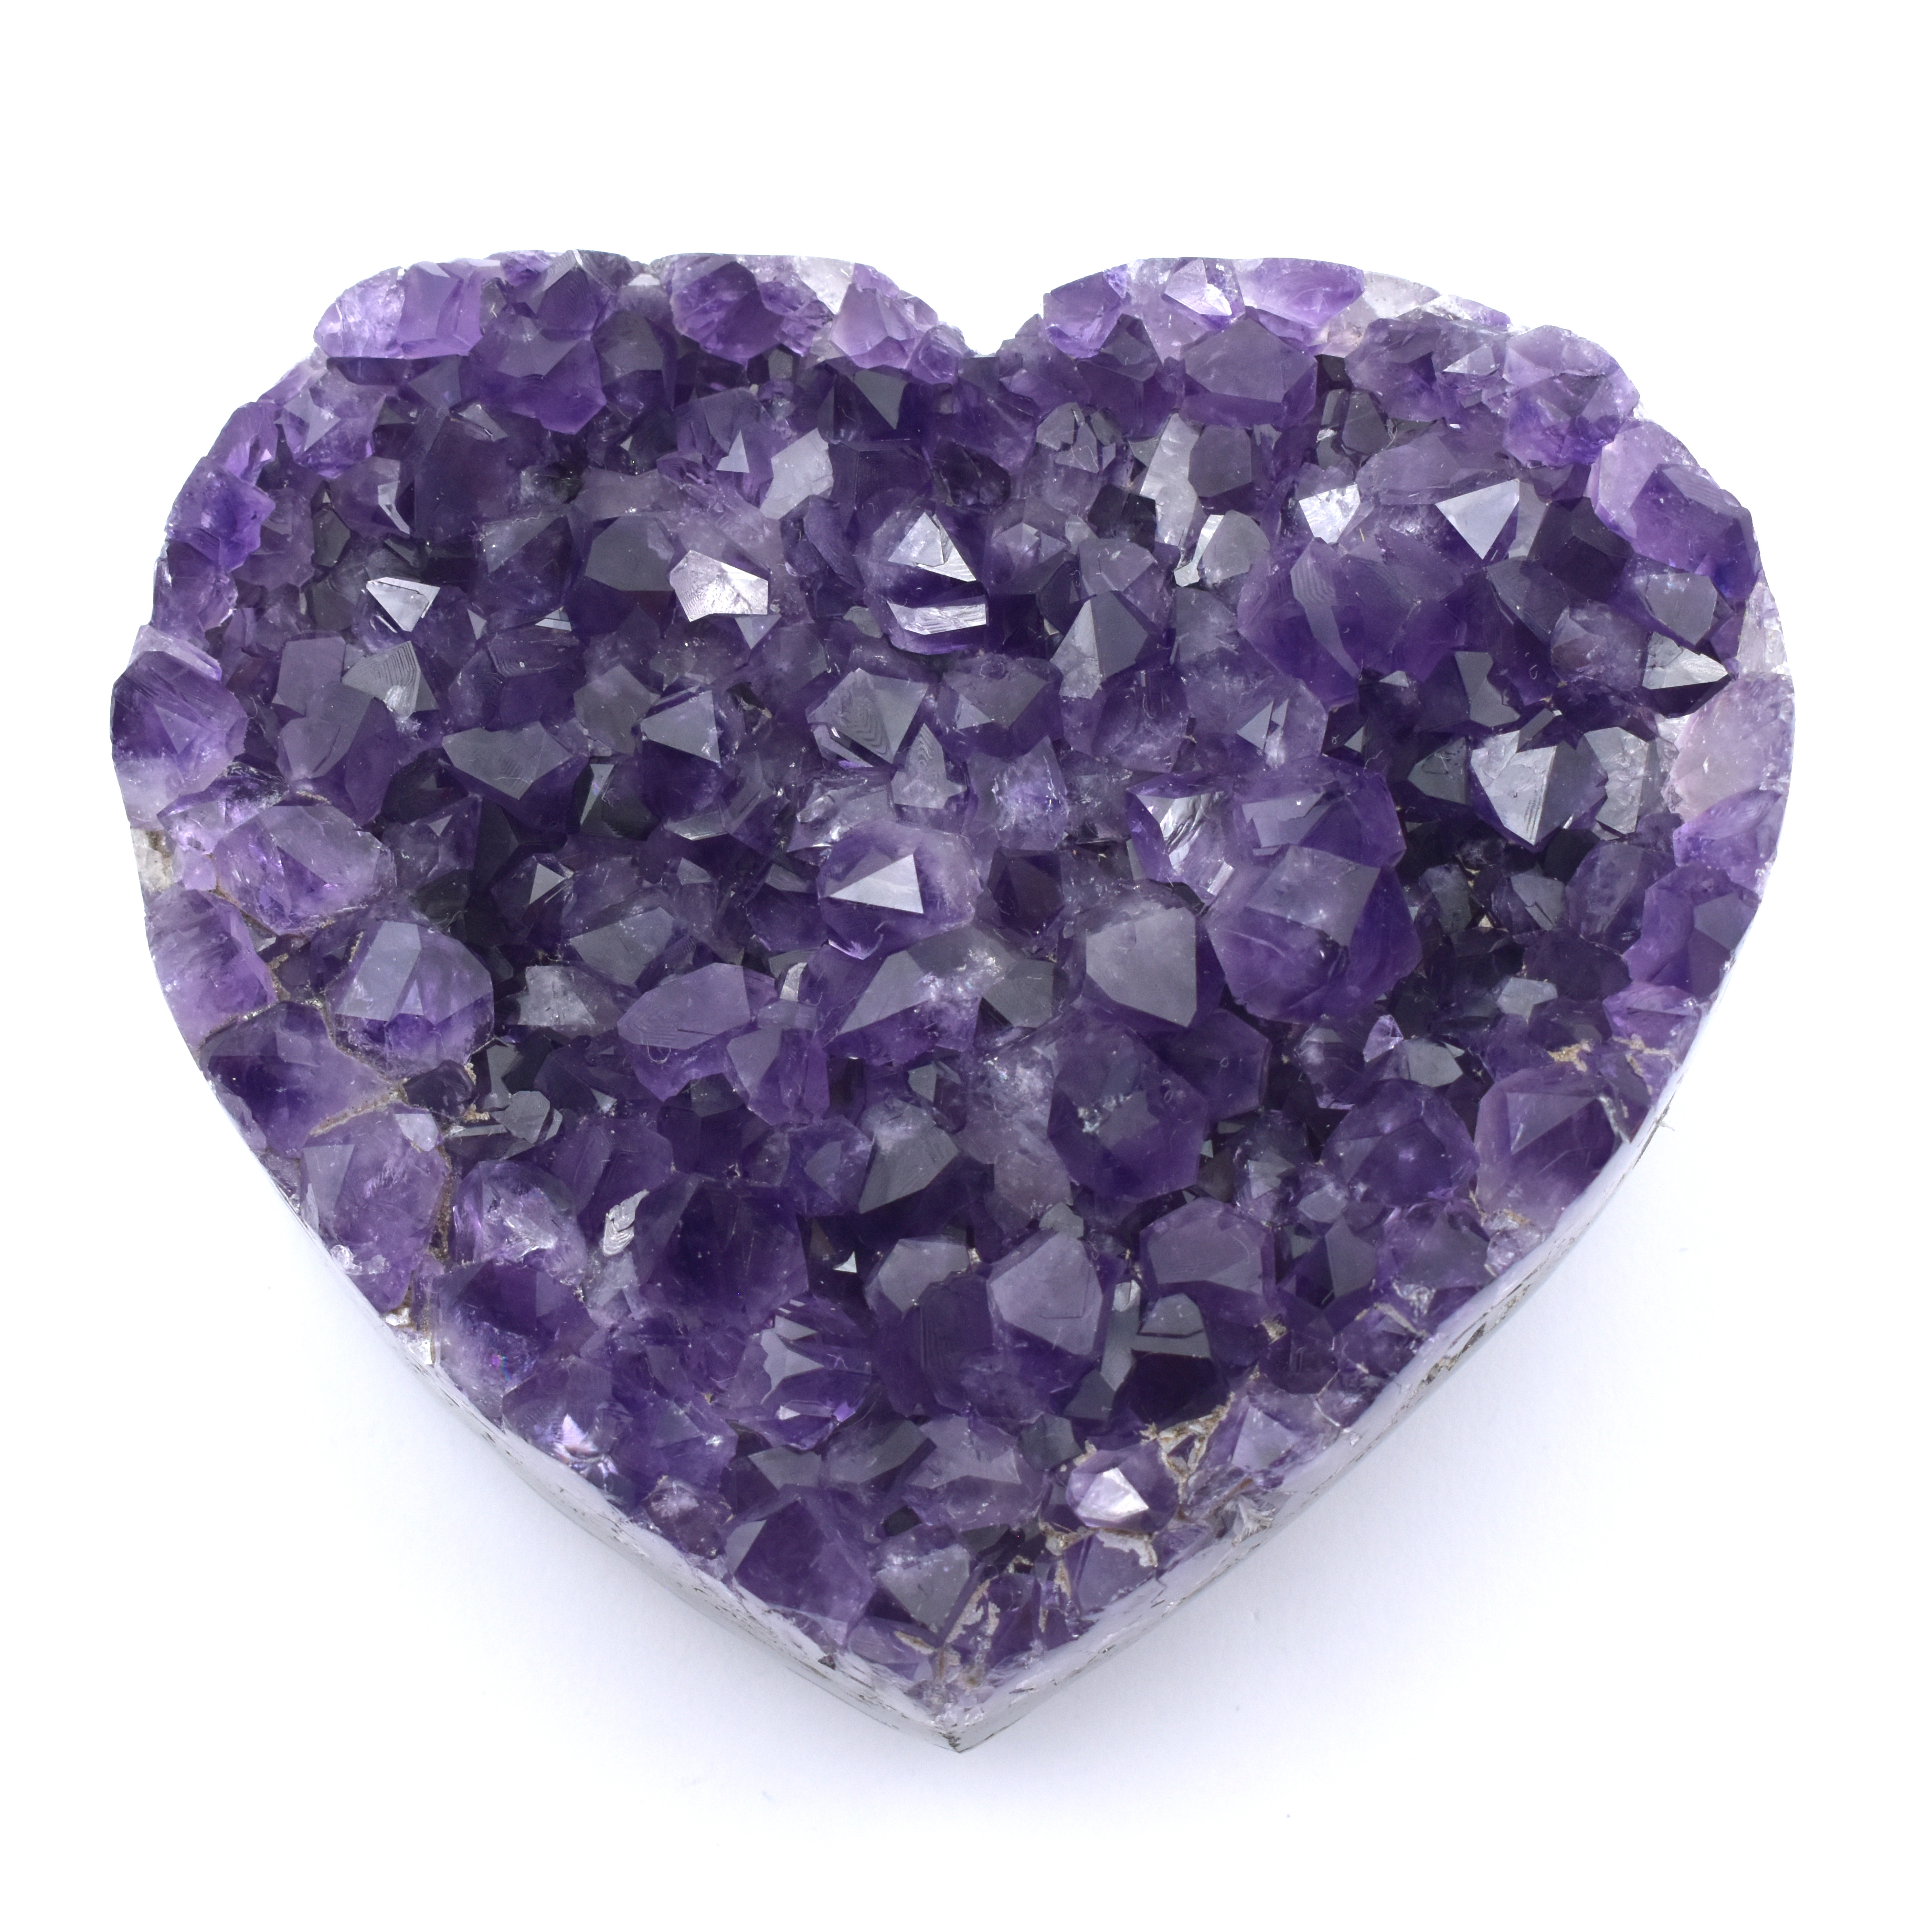 Amethyst Heart Cluster Hearts crystals wholesale